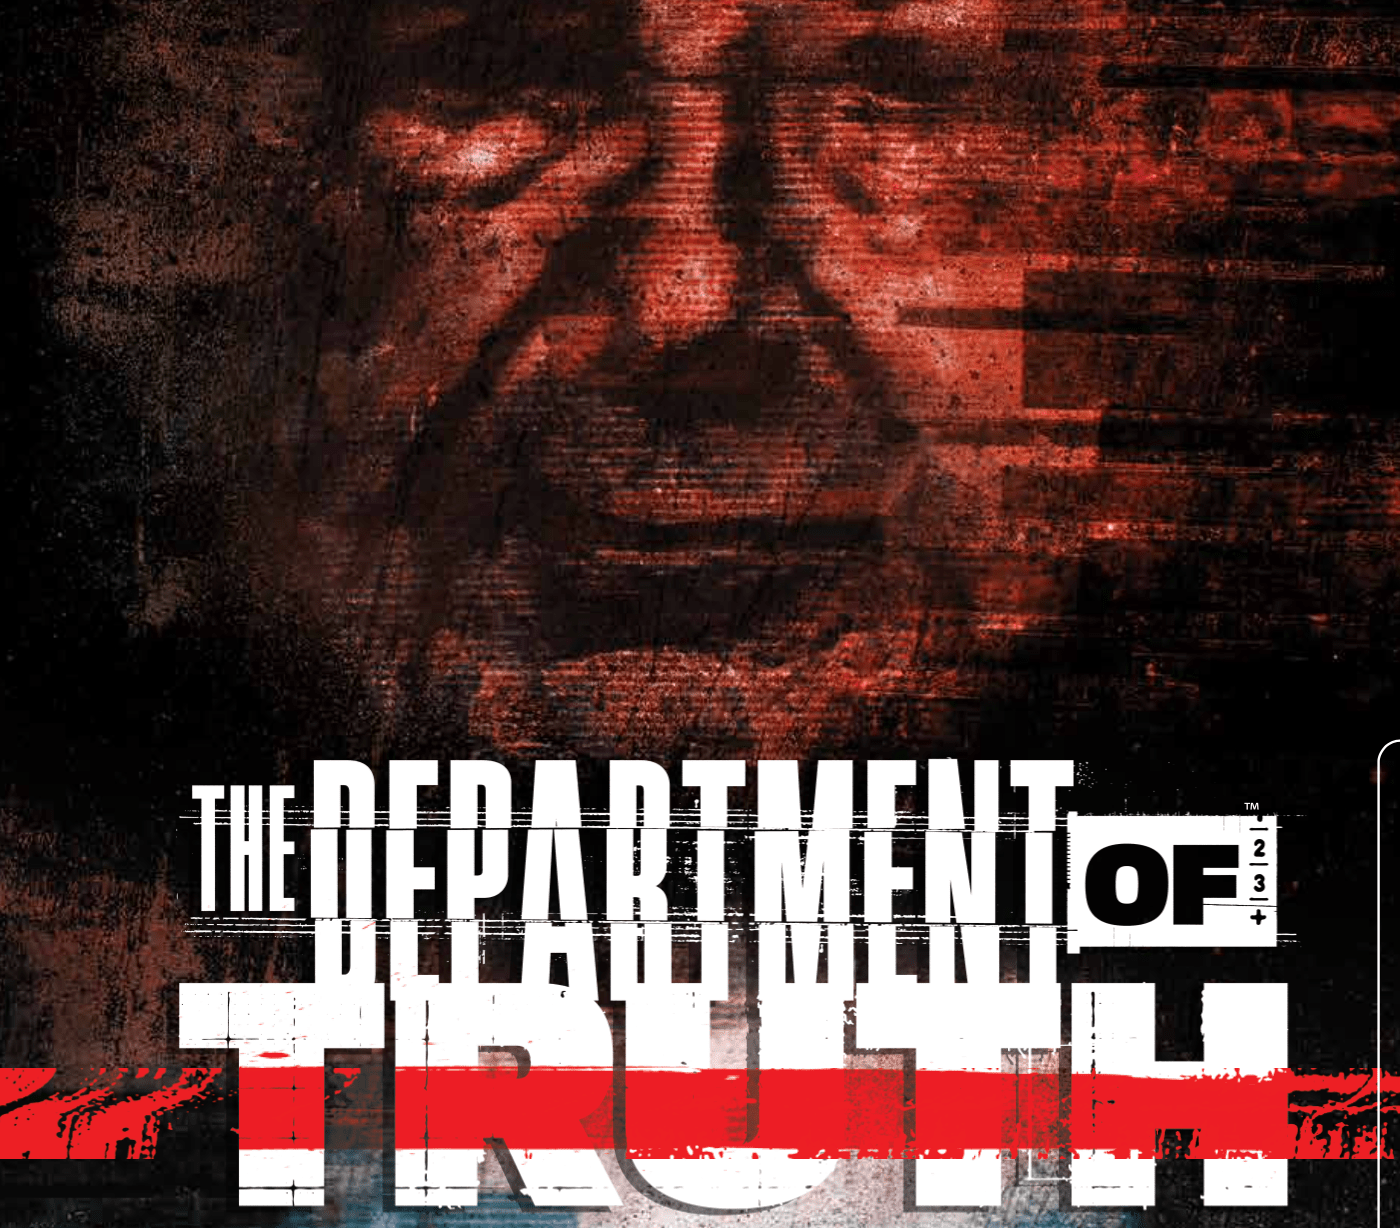 'The Department of Truth' #13 is filled with revelations